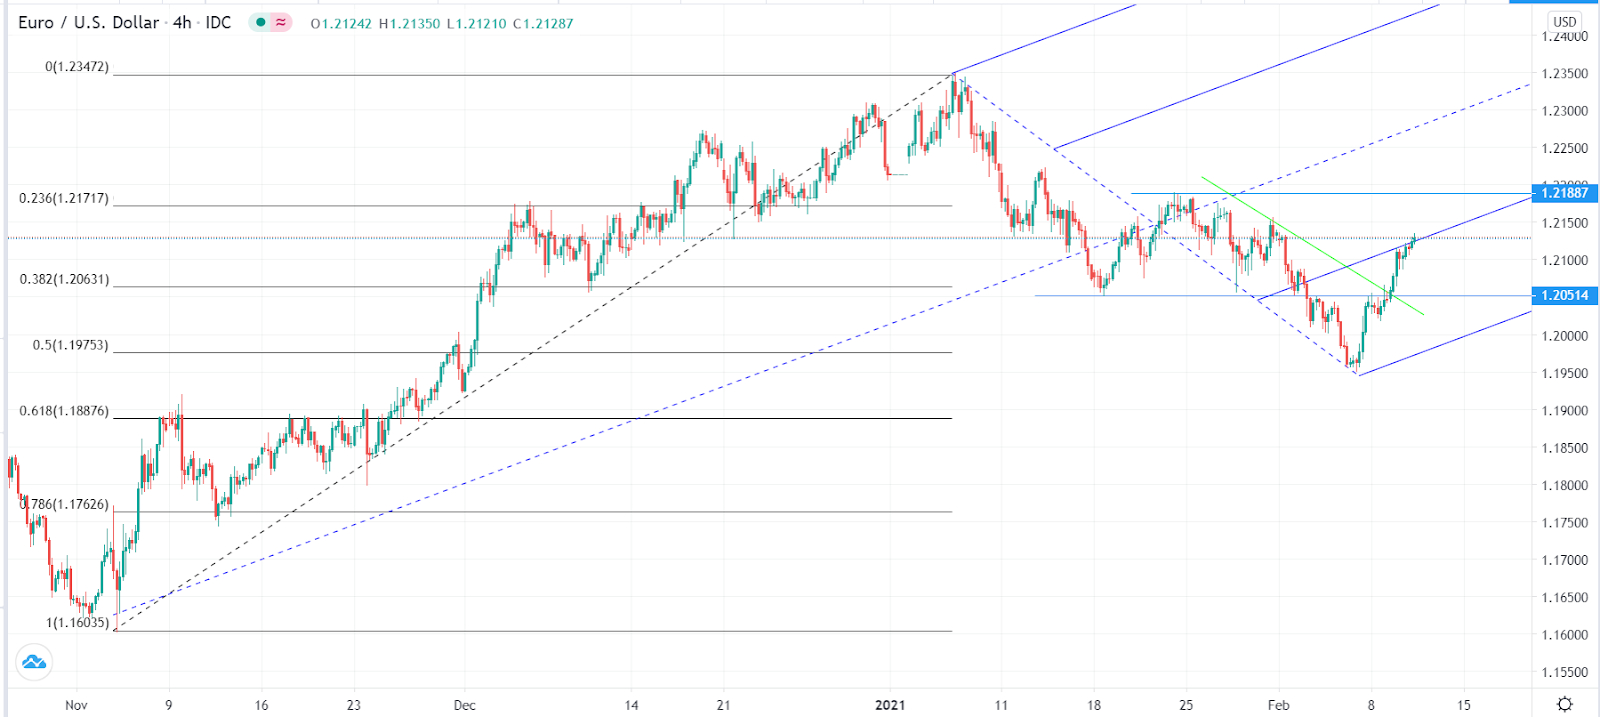 EUR/USD uptrend continues ahead of US inflation numbers